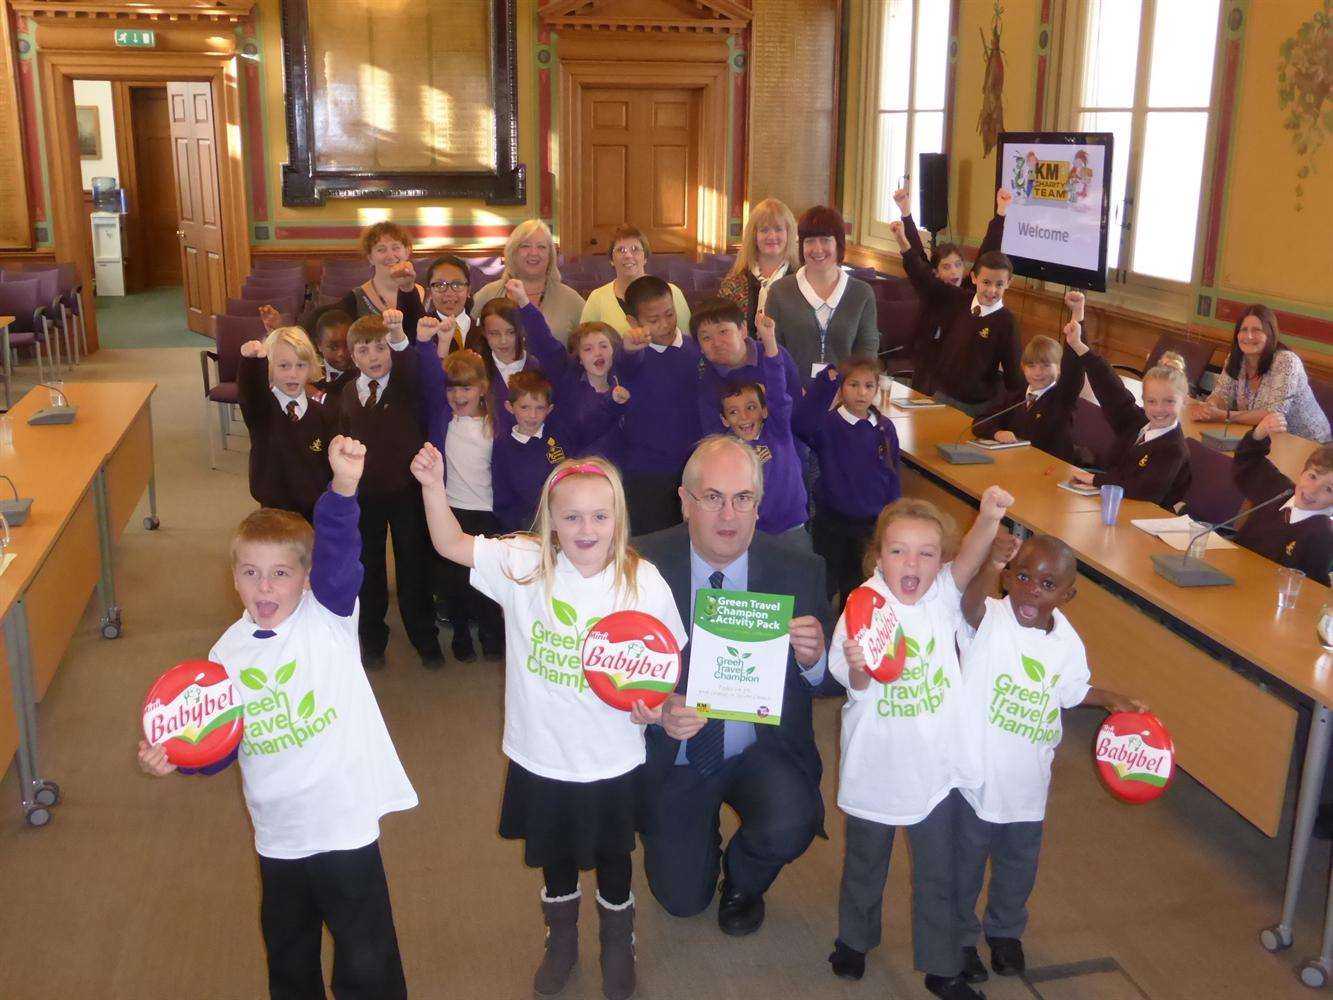 Maidstone Council Environmental Health Manager Steve Wilcock launches the Green Champion scheme supported by Archbishop Courtney pupils David Smith, seven, Jasmine Woodridge, eight, Mya Riddell, six, and Kenan Minta, four, cheered on by school delegates.